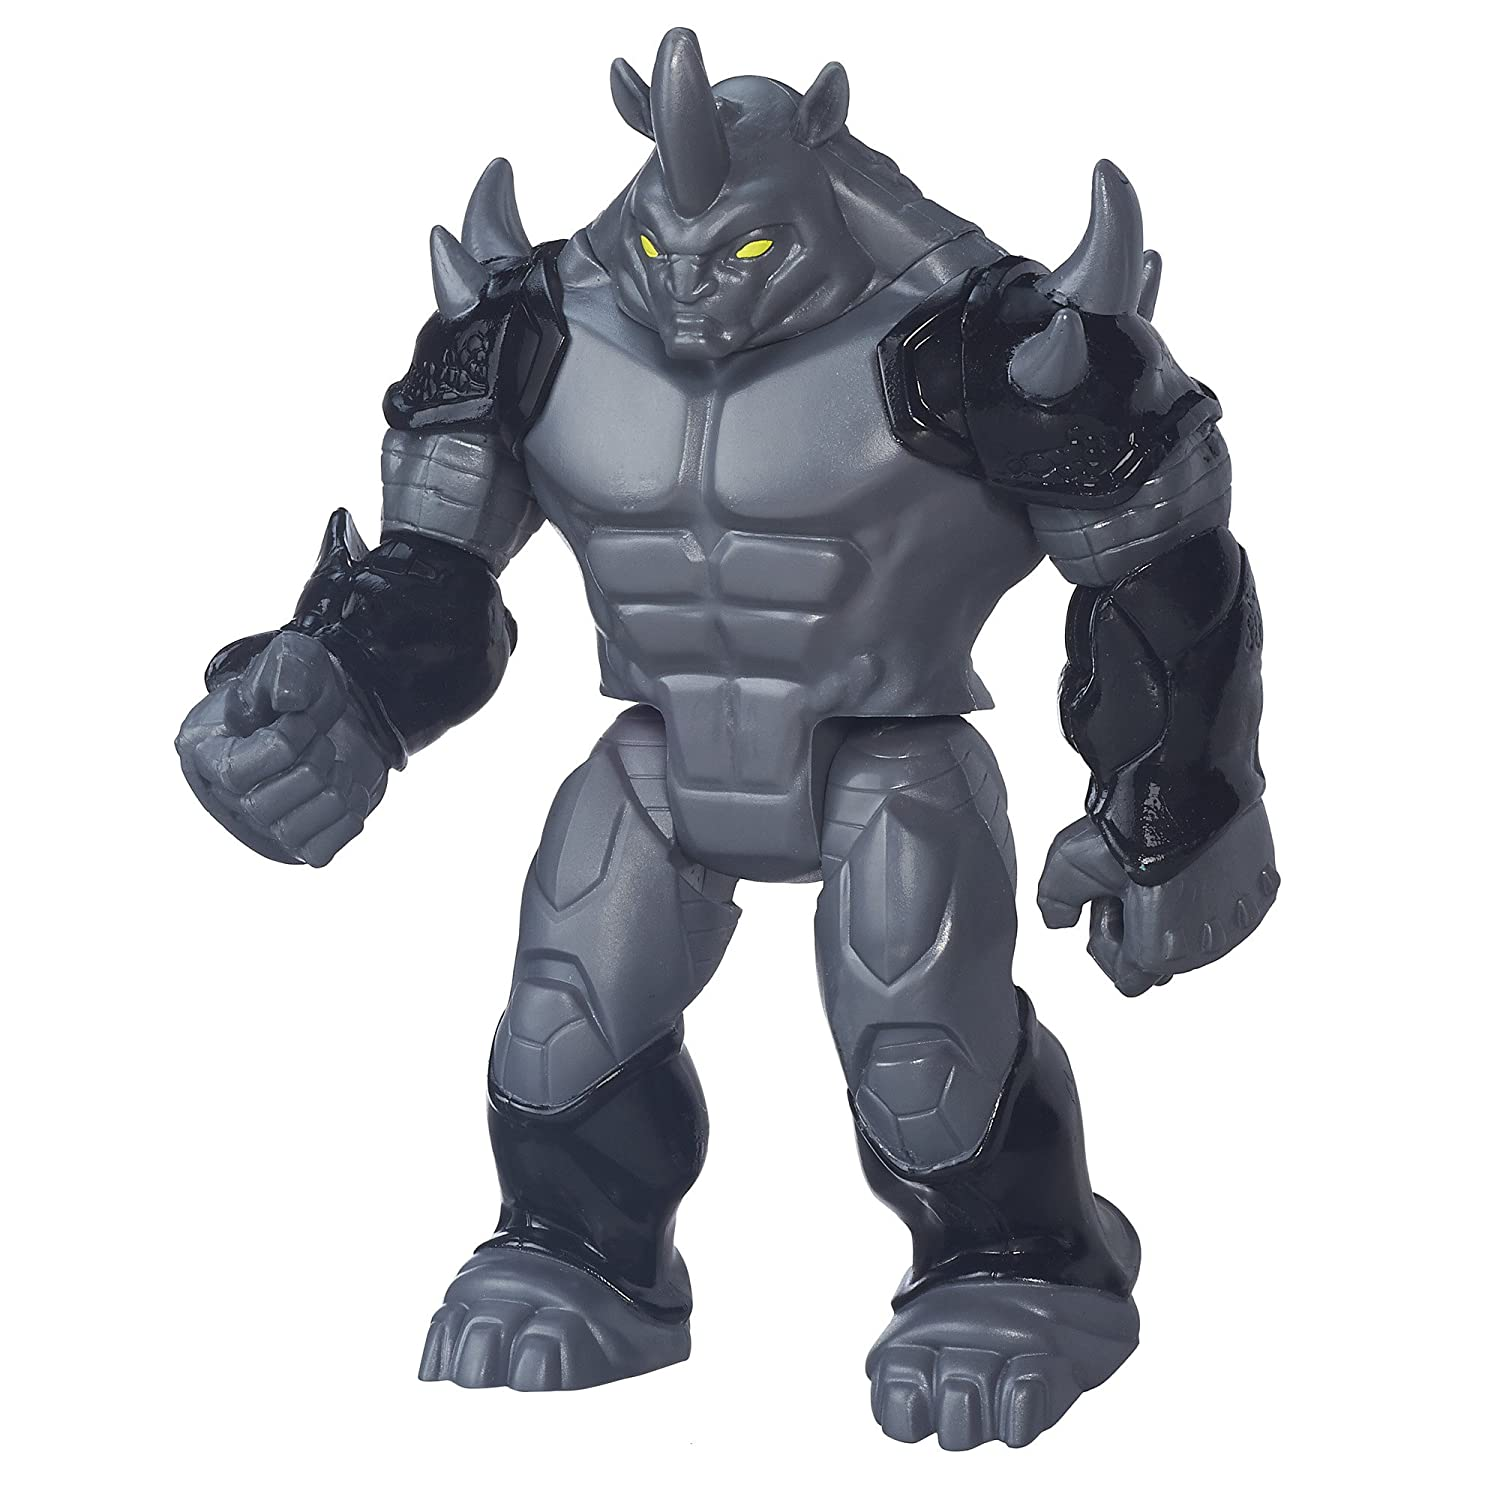 Ultimate Spider-Man vs. The Sinister Six: Marvel's Rhino 6-in Figure by Spider-Man